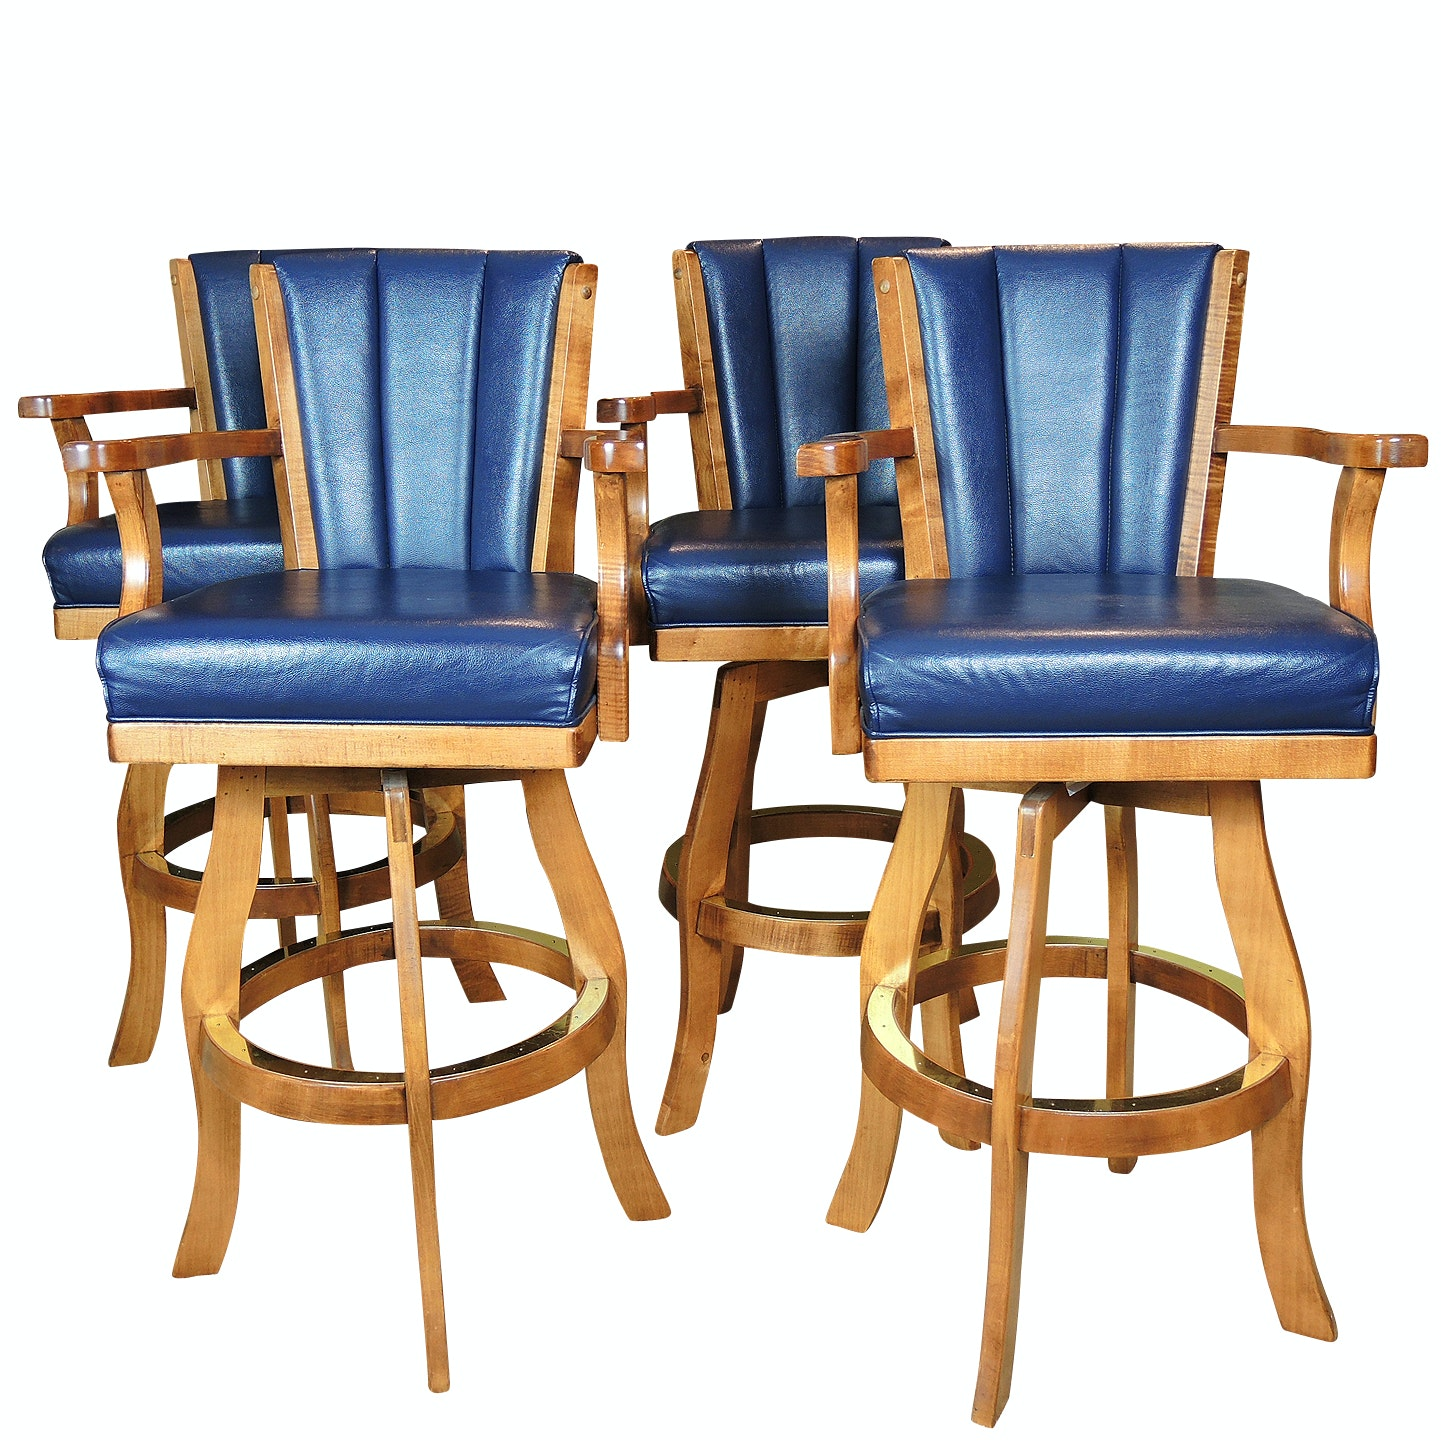 Beach Manufacturing Wooden Bar Stools, Contemporary